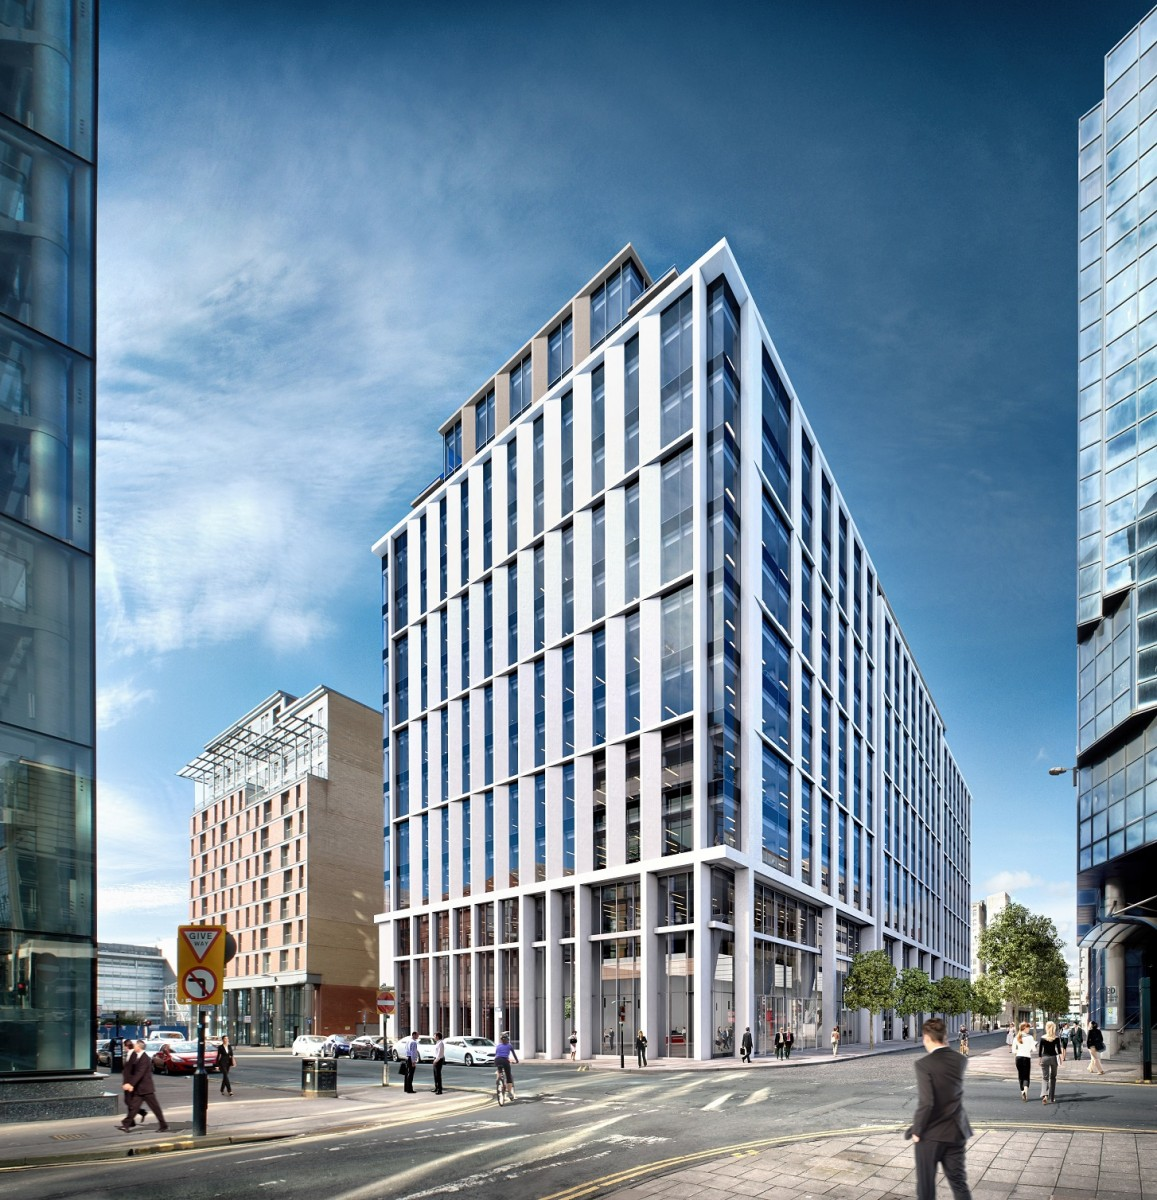 Glasgow Office Build To Plug Supply Shortfall After